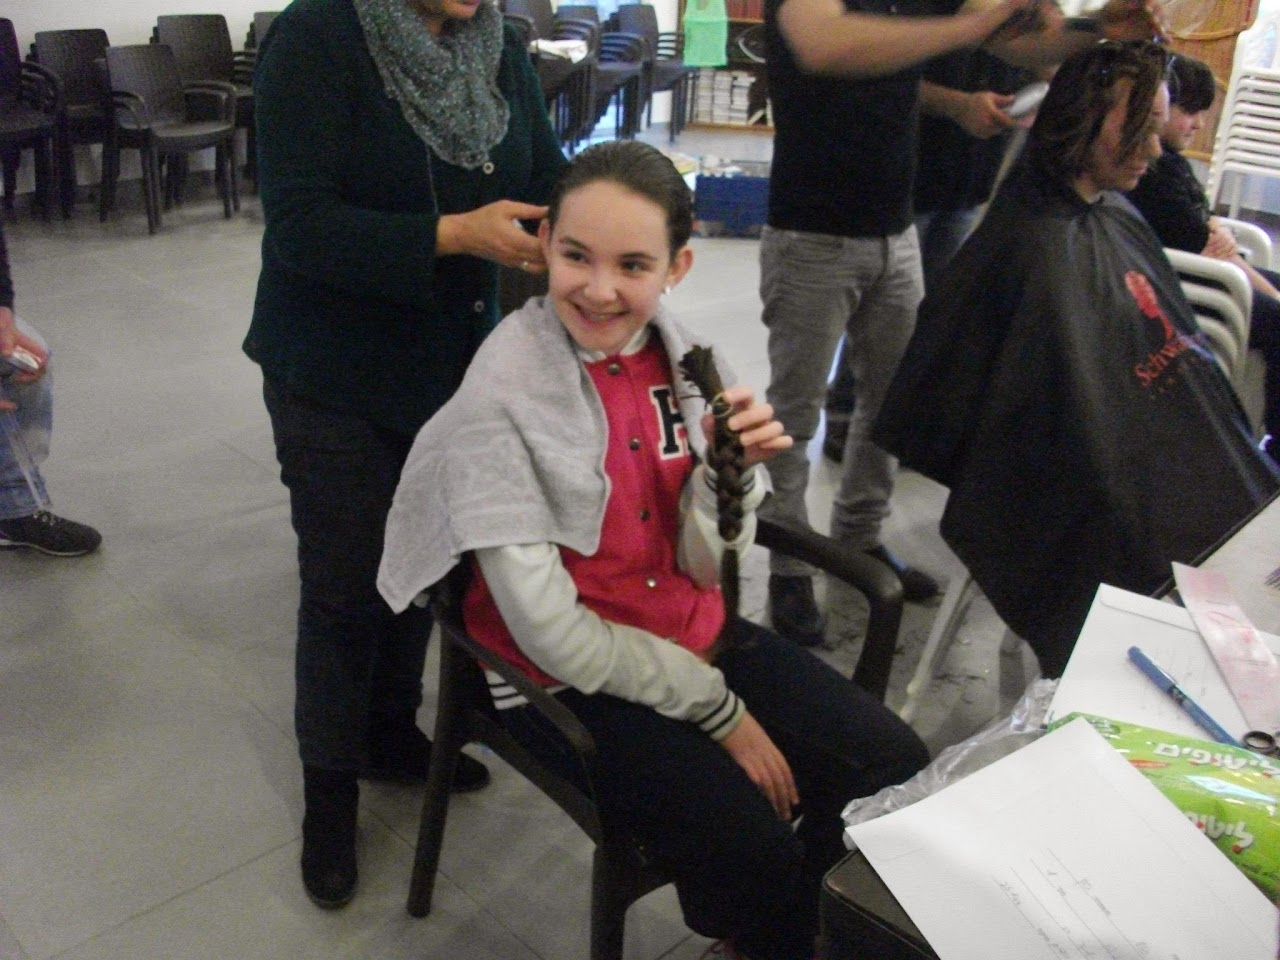 Donating hair for cancer patients 2014  - 1980109_539677022815262_1301711968_o.jpg